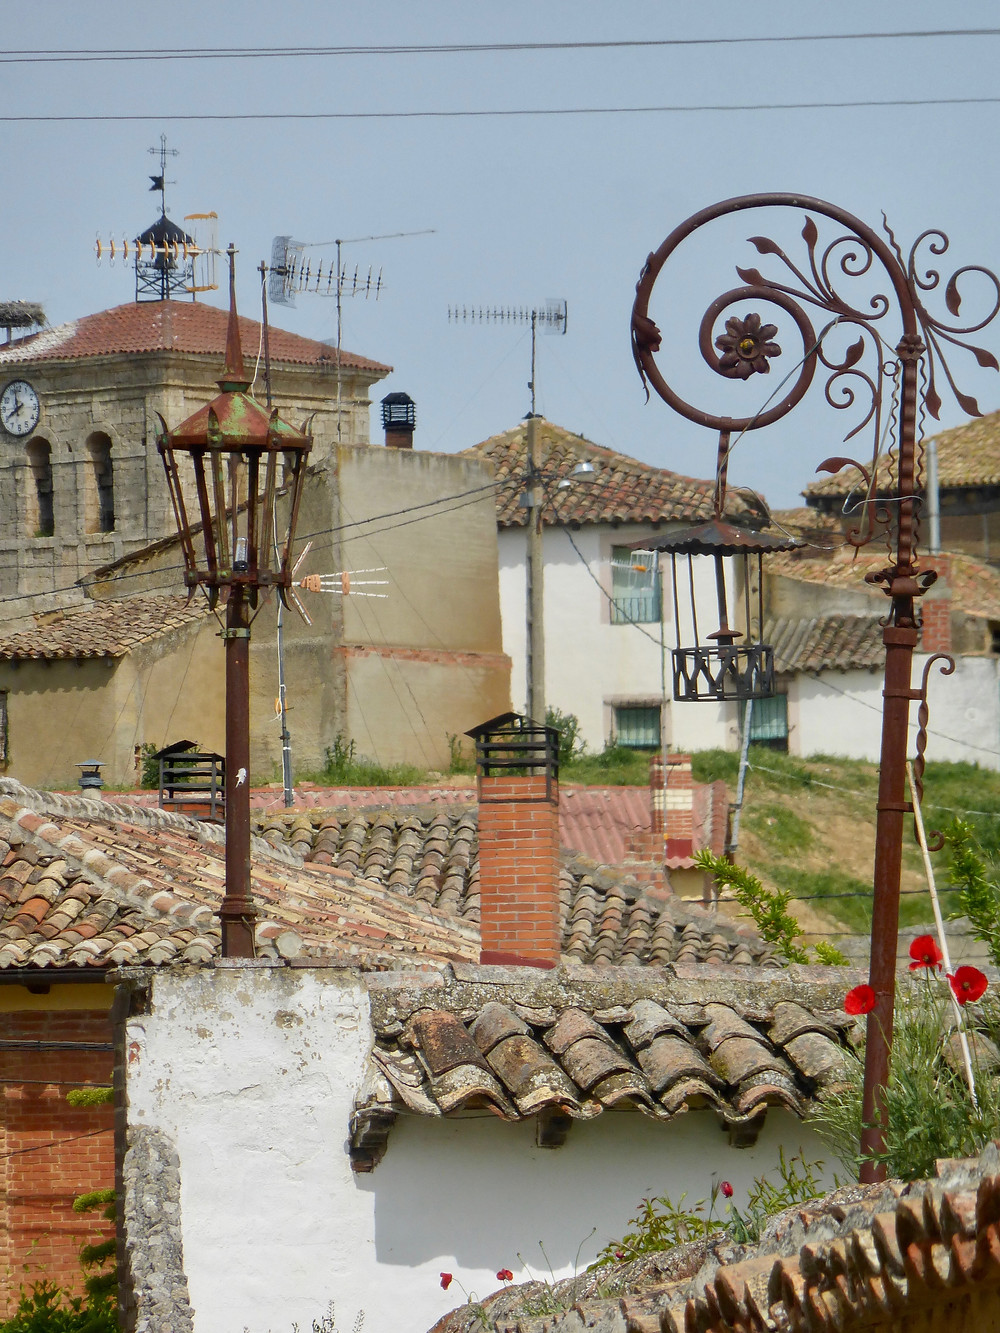 Decorative rooftops on the Camino